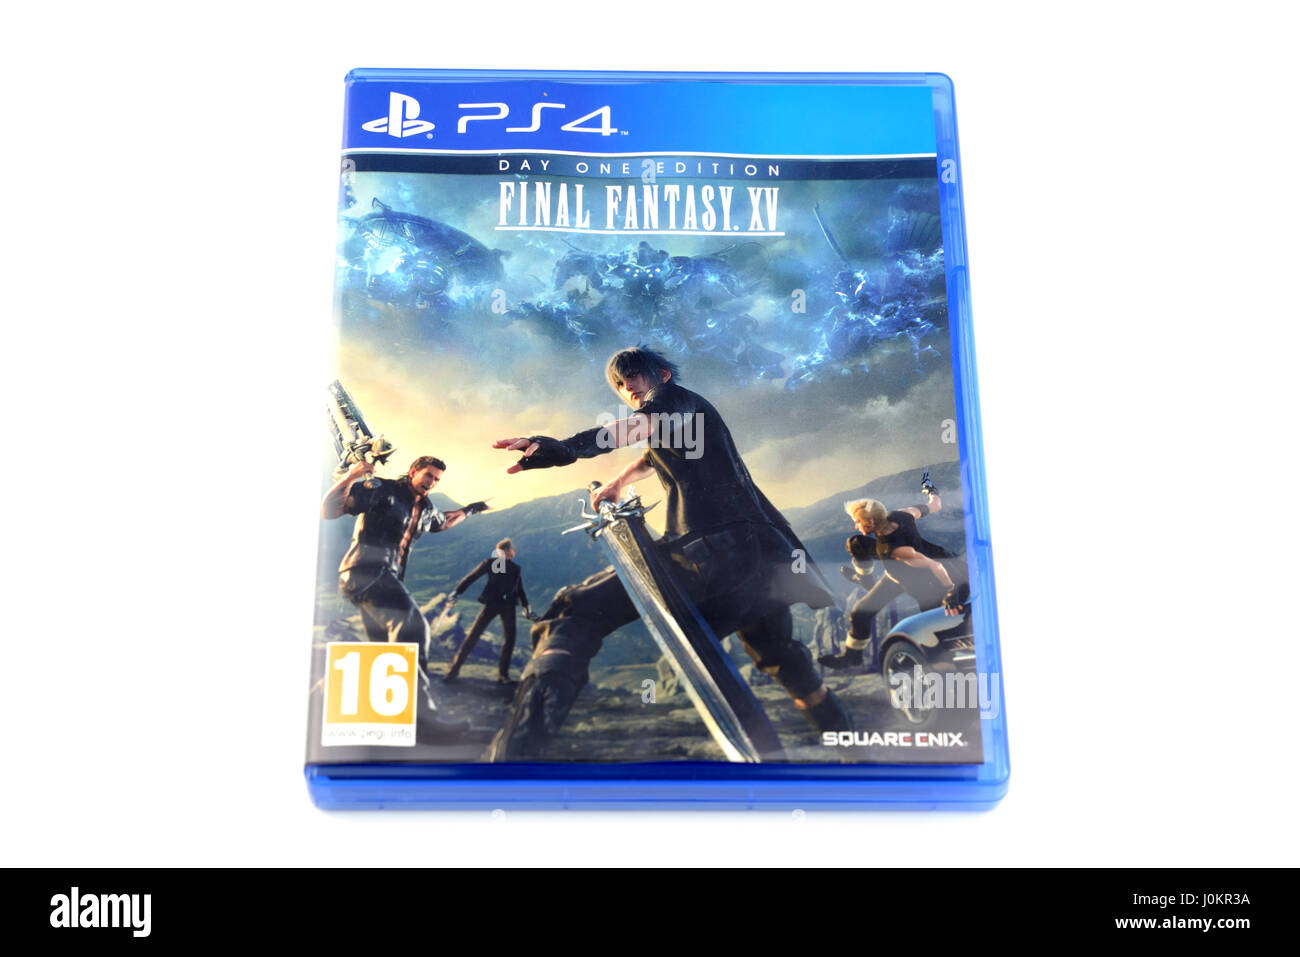 El Famoso Video Juego Final Fantasy Xv Publicado Por Square Enix